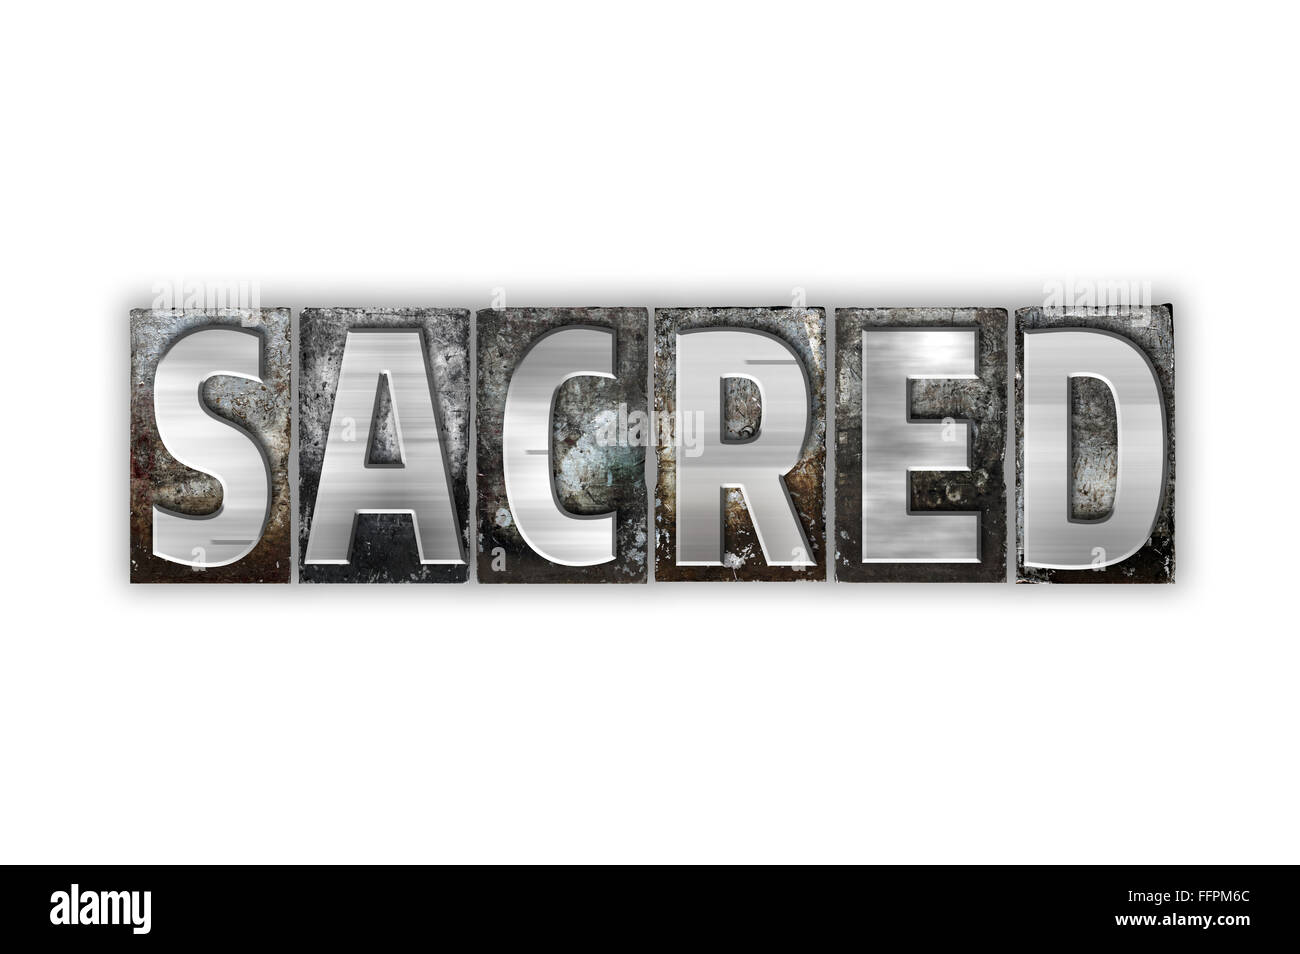 The word 'Sacred' written in vintage metal letterpress type isolated on a white background. - Stock Image